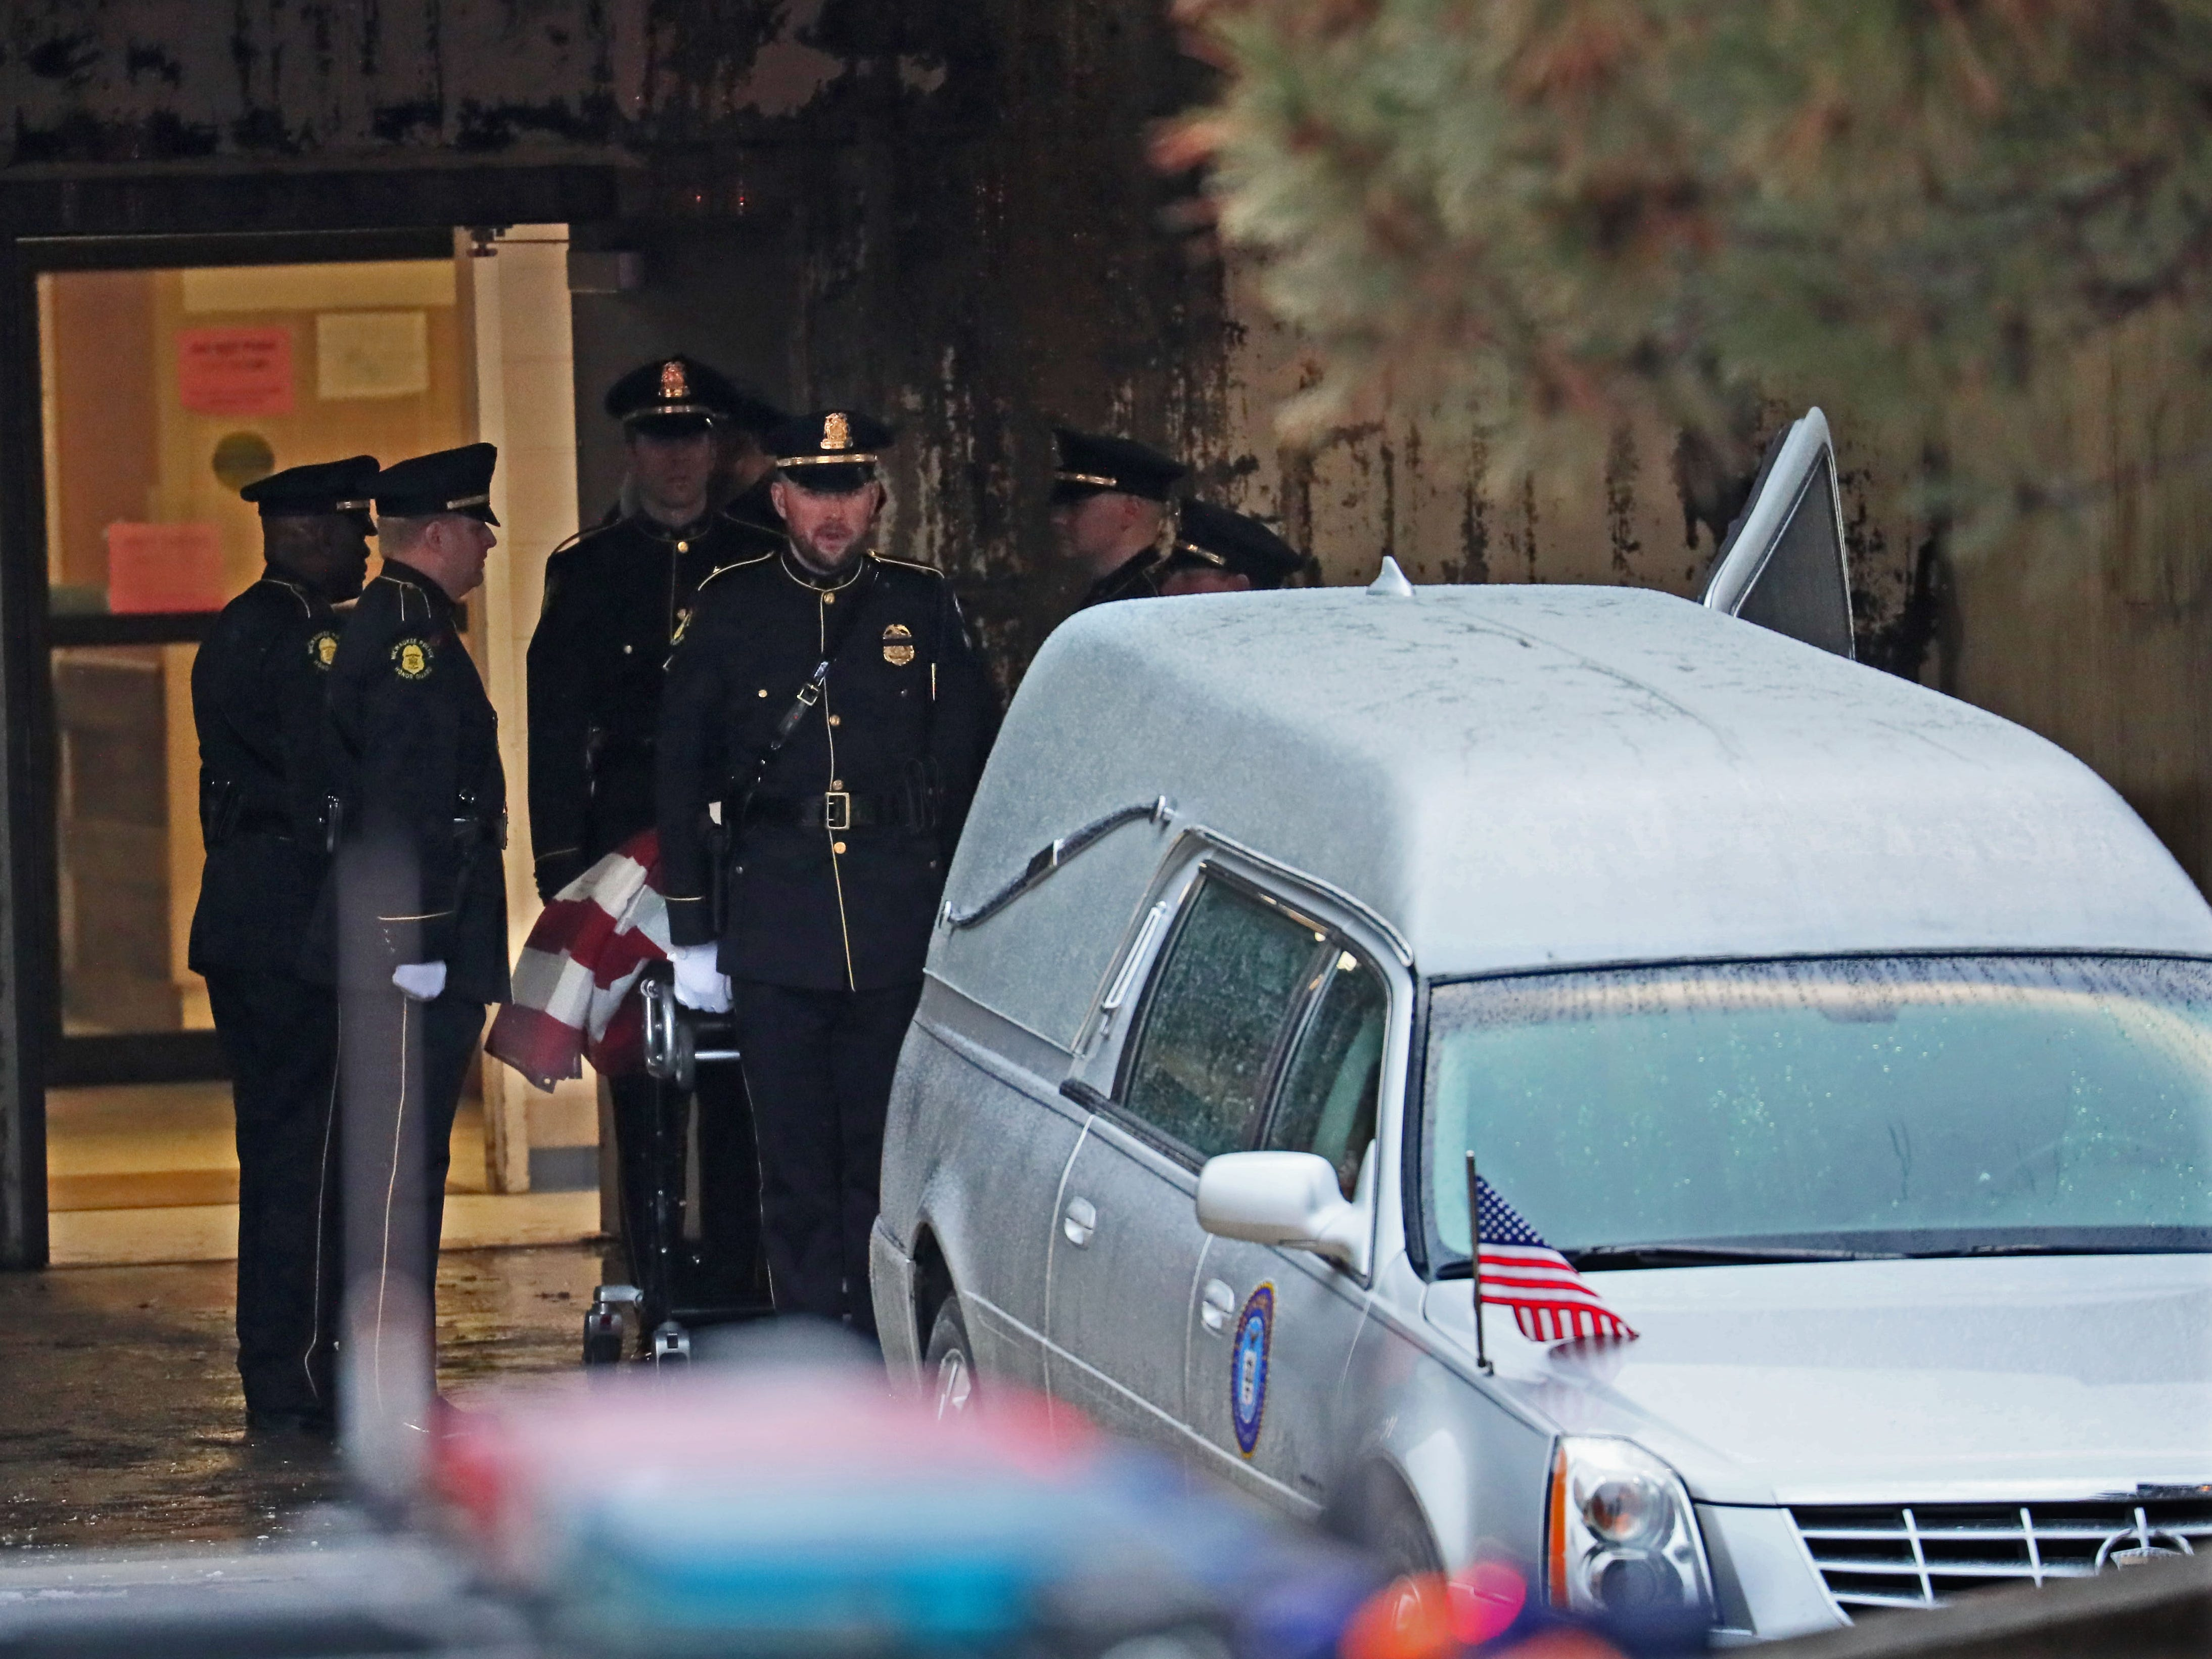 A Police honor guard loads the flag draped coffin of Officer Matthew Rittner into a waiting hearse at the Milwaukee County Medical Examiners office to be taken to the funeral home.